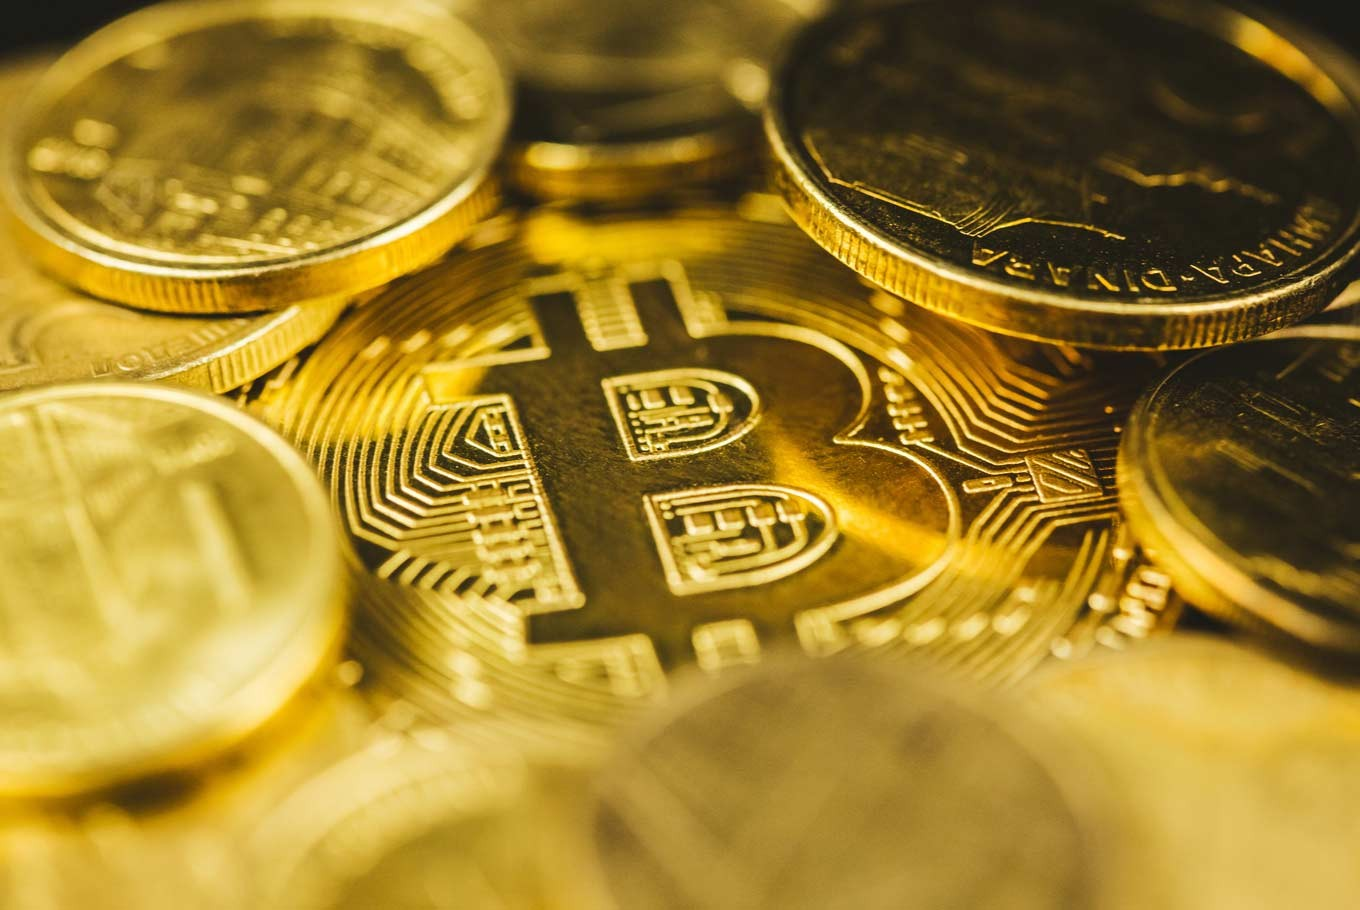 BI investigates use of bitcoin in Bali